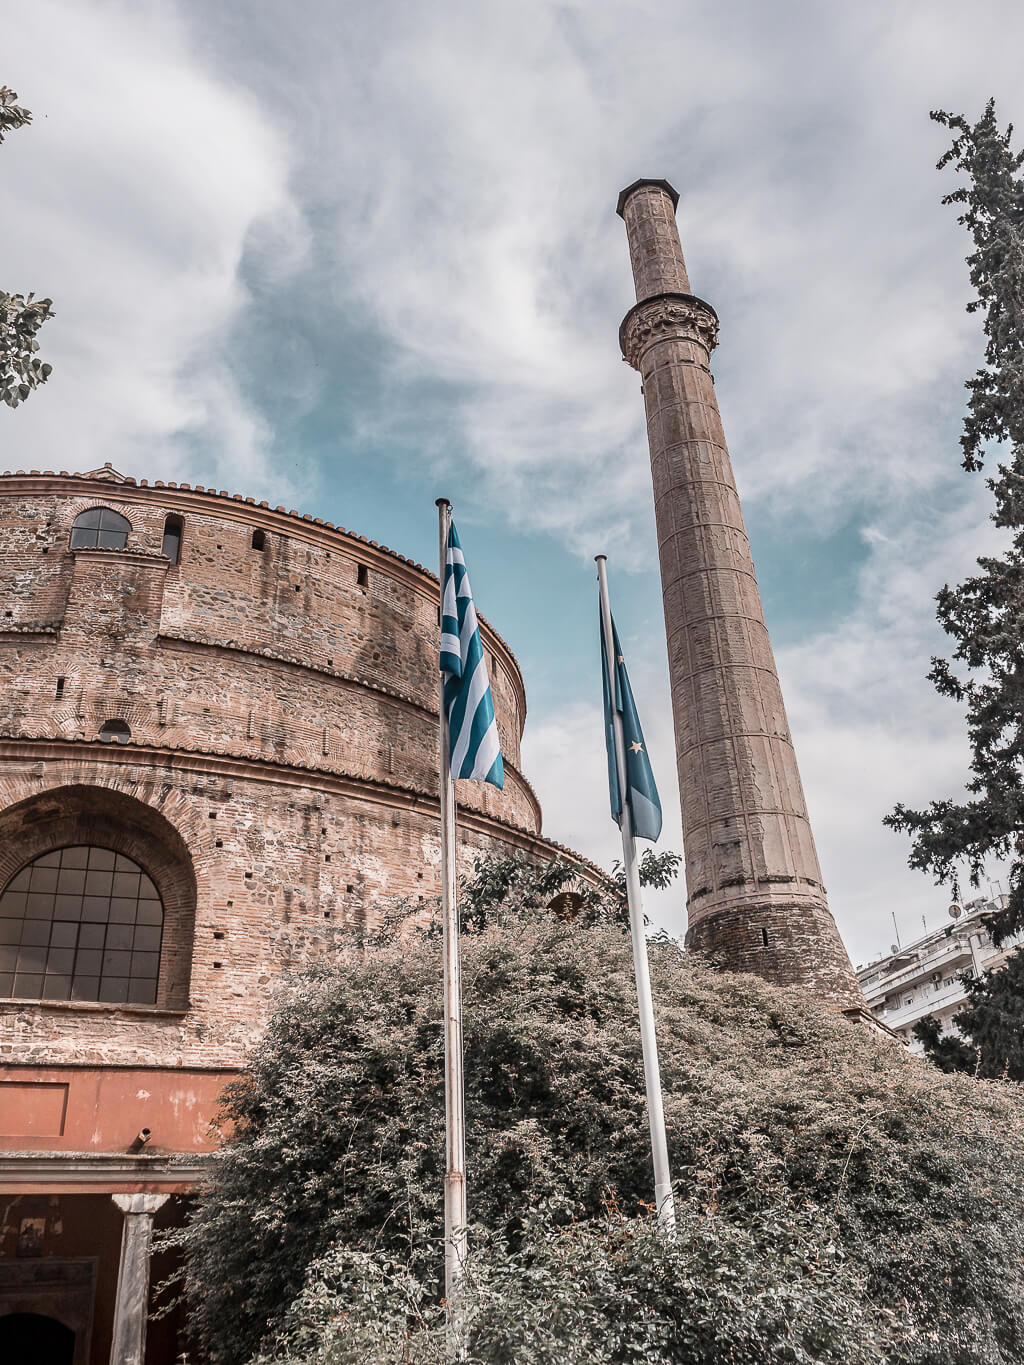 A Guide For Planning A Trip To Thessaloniki - Things to do in the capital of Macedonia {2 day itinerary, including food & restaurants tips, shopping and sightseeing}